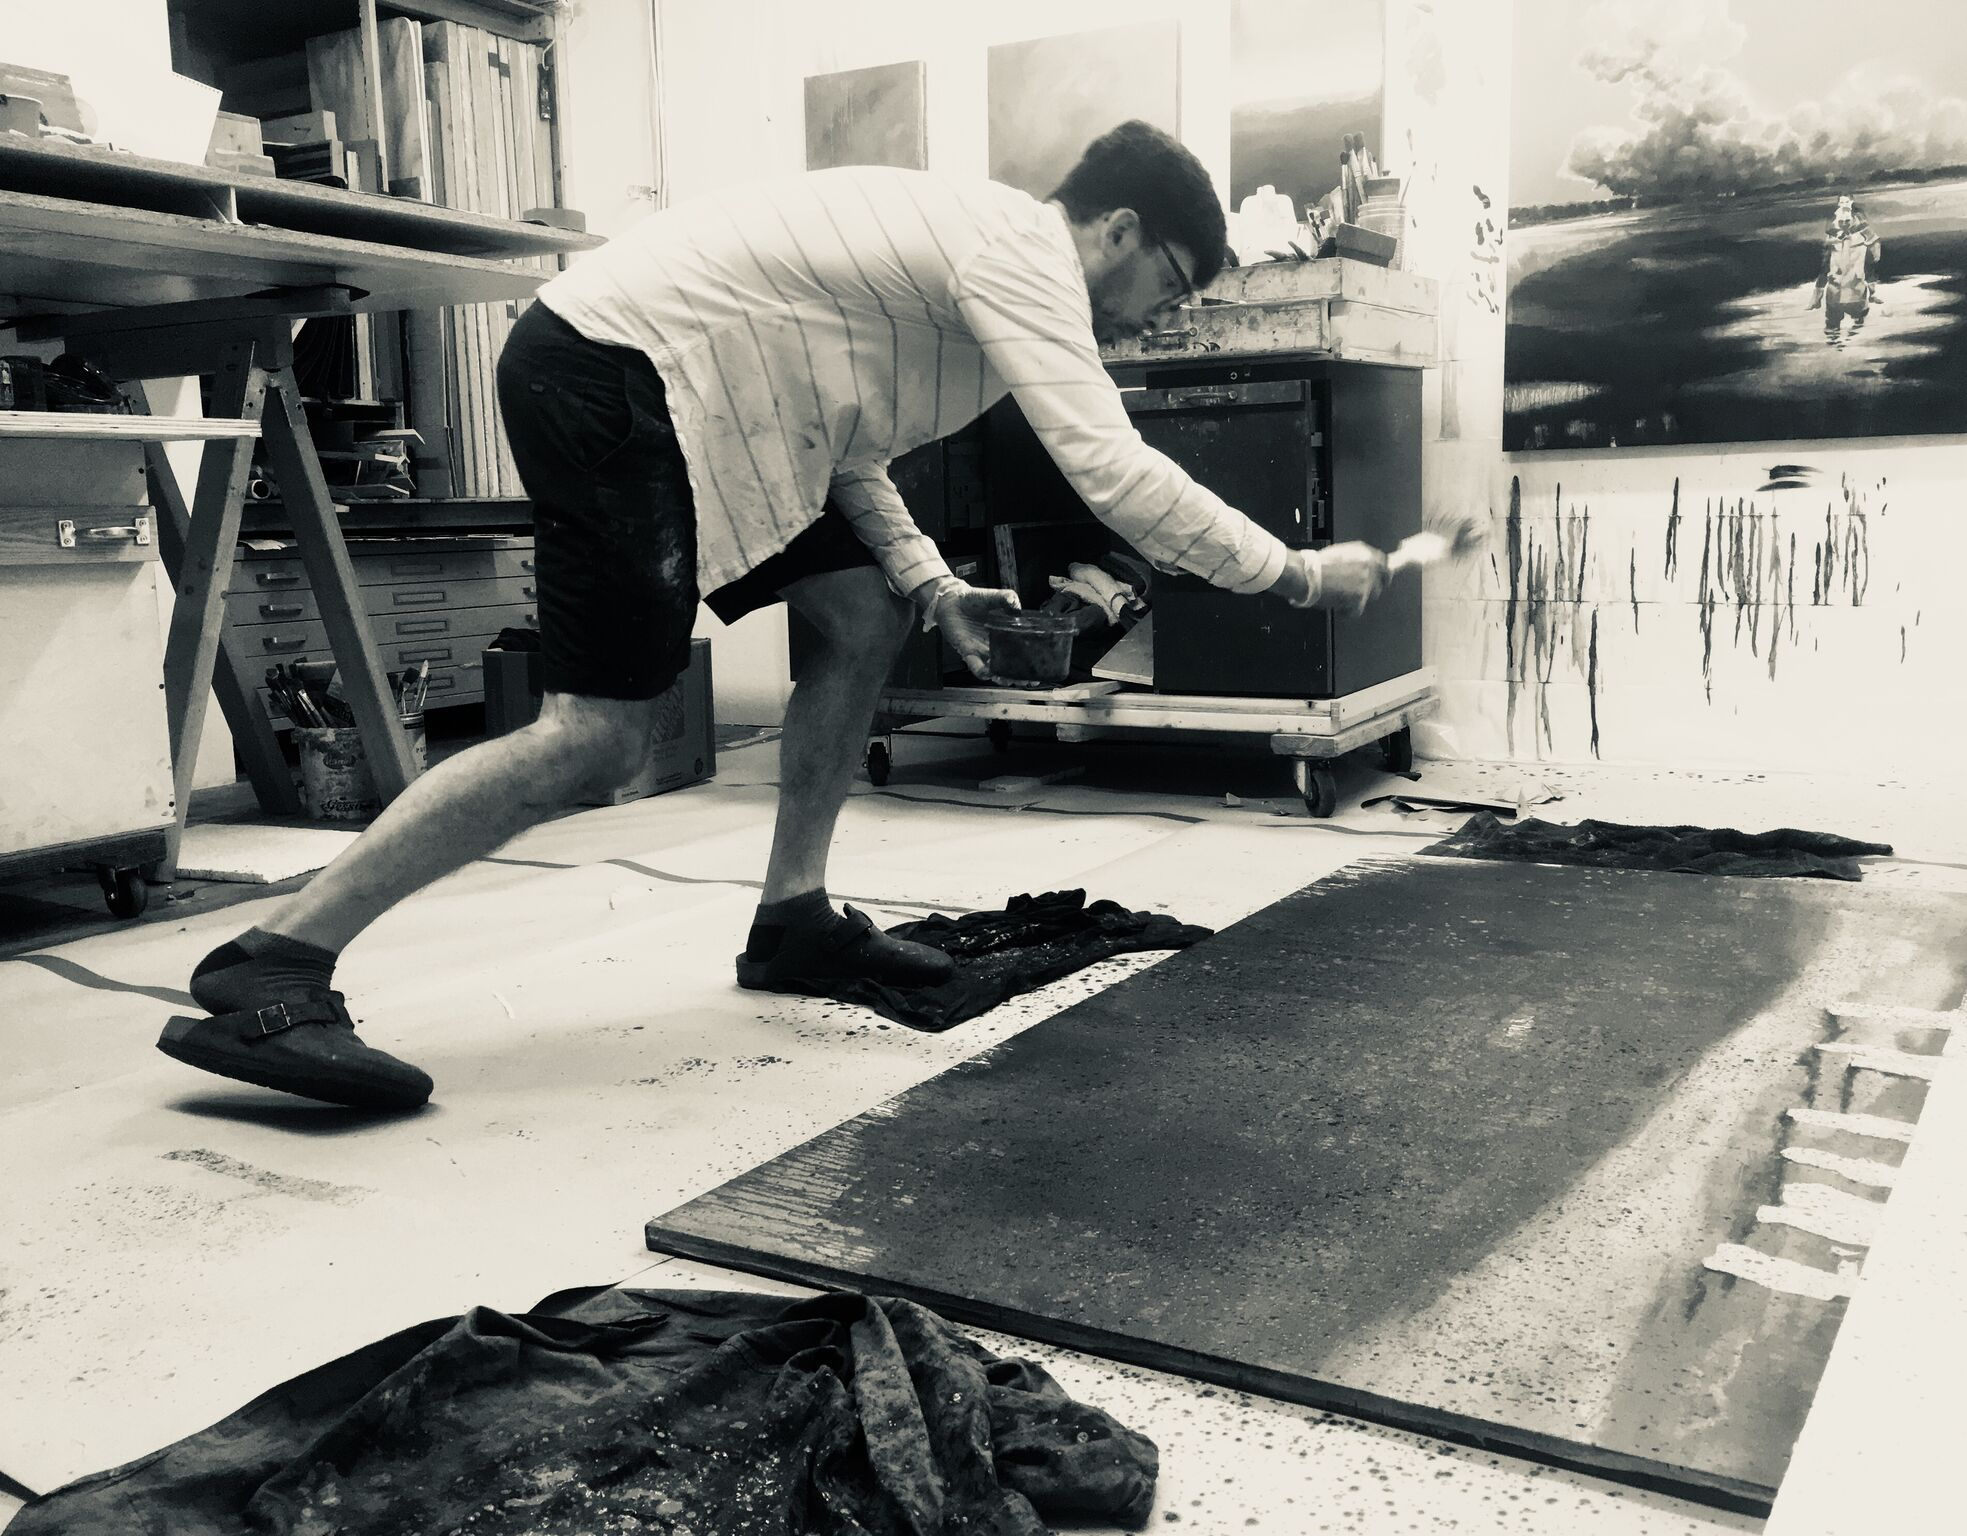 Neusser working in his studio, Summer 2018. Image courtesy of the artist.